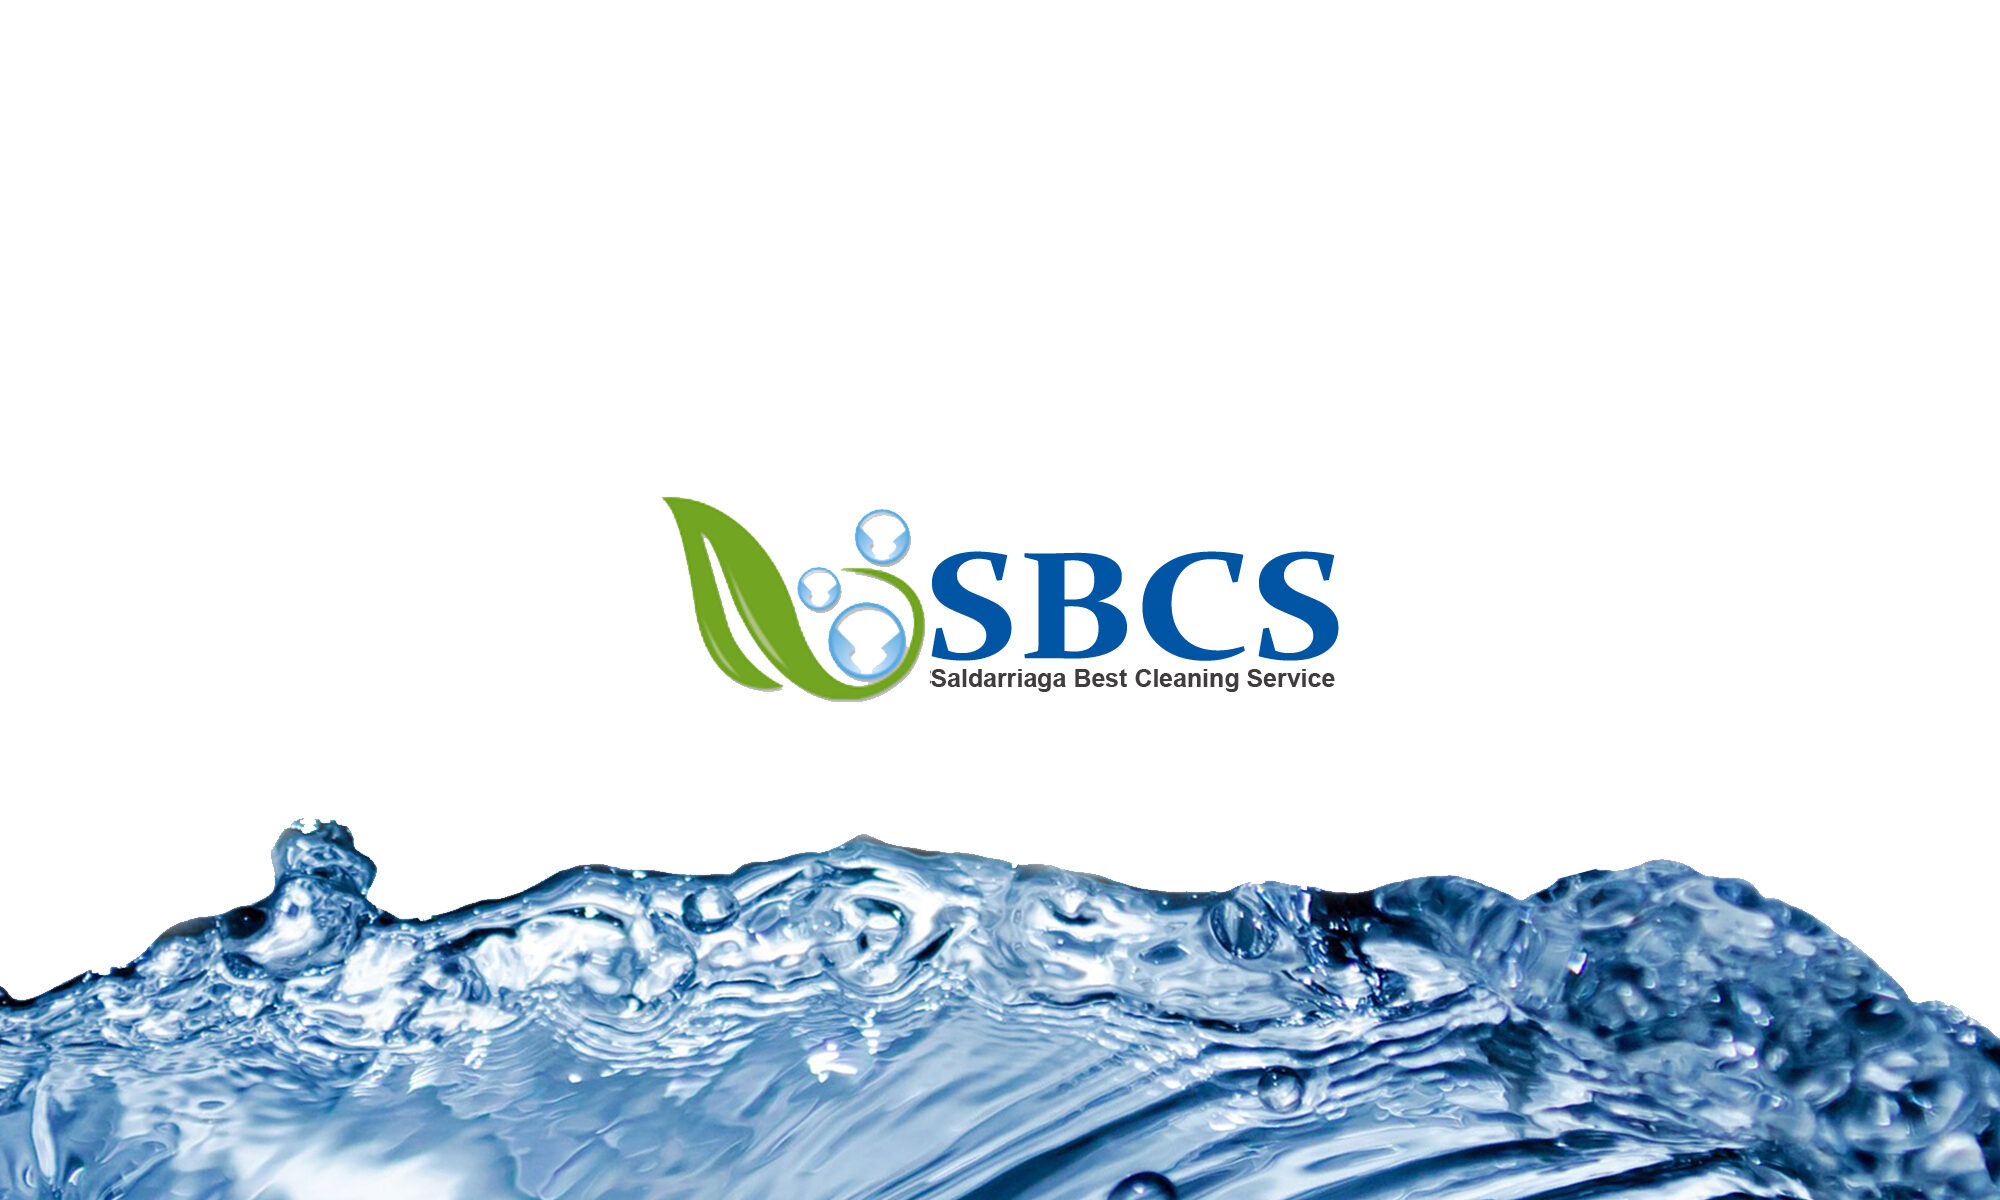 sbcs cleaning service